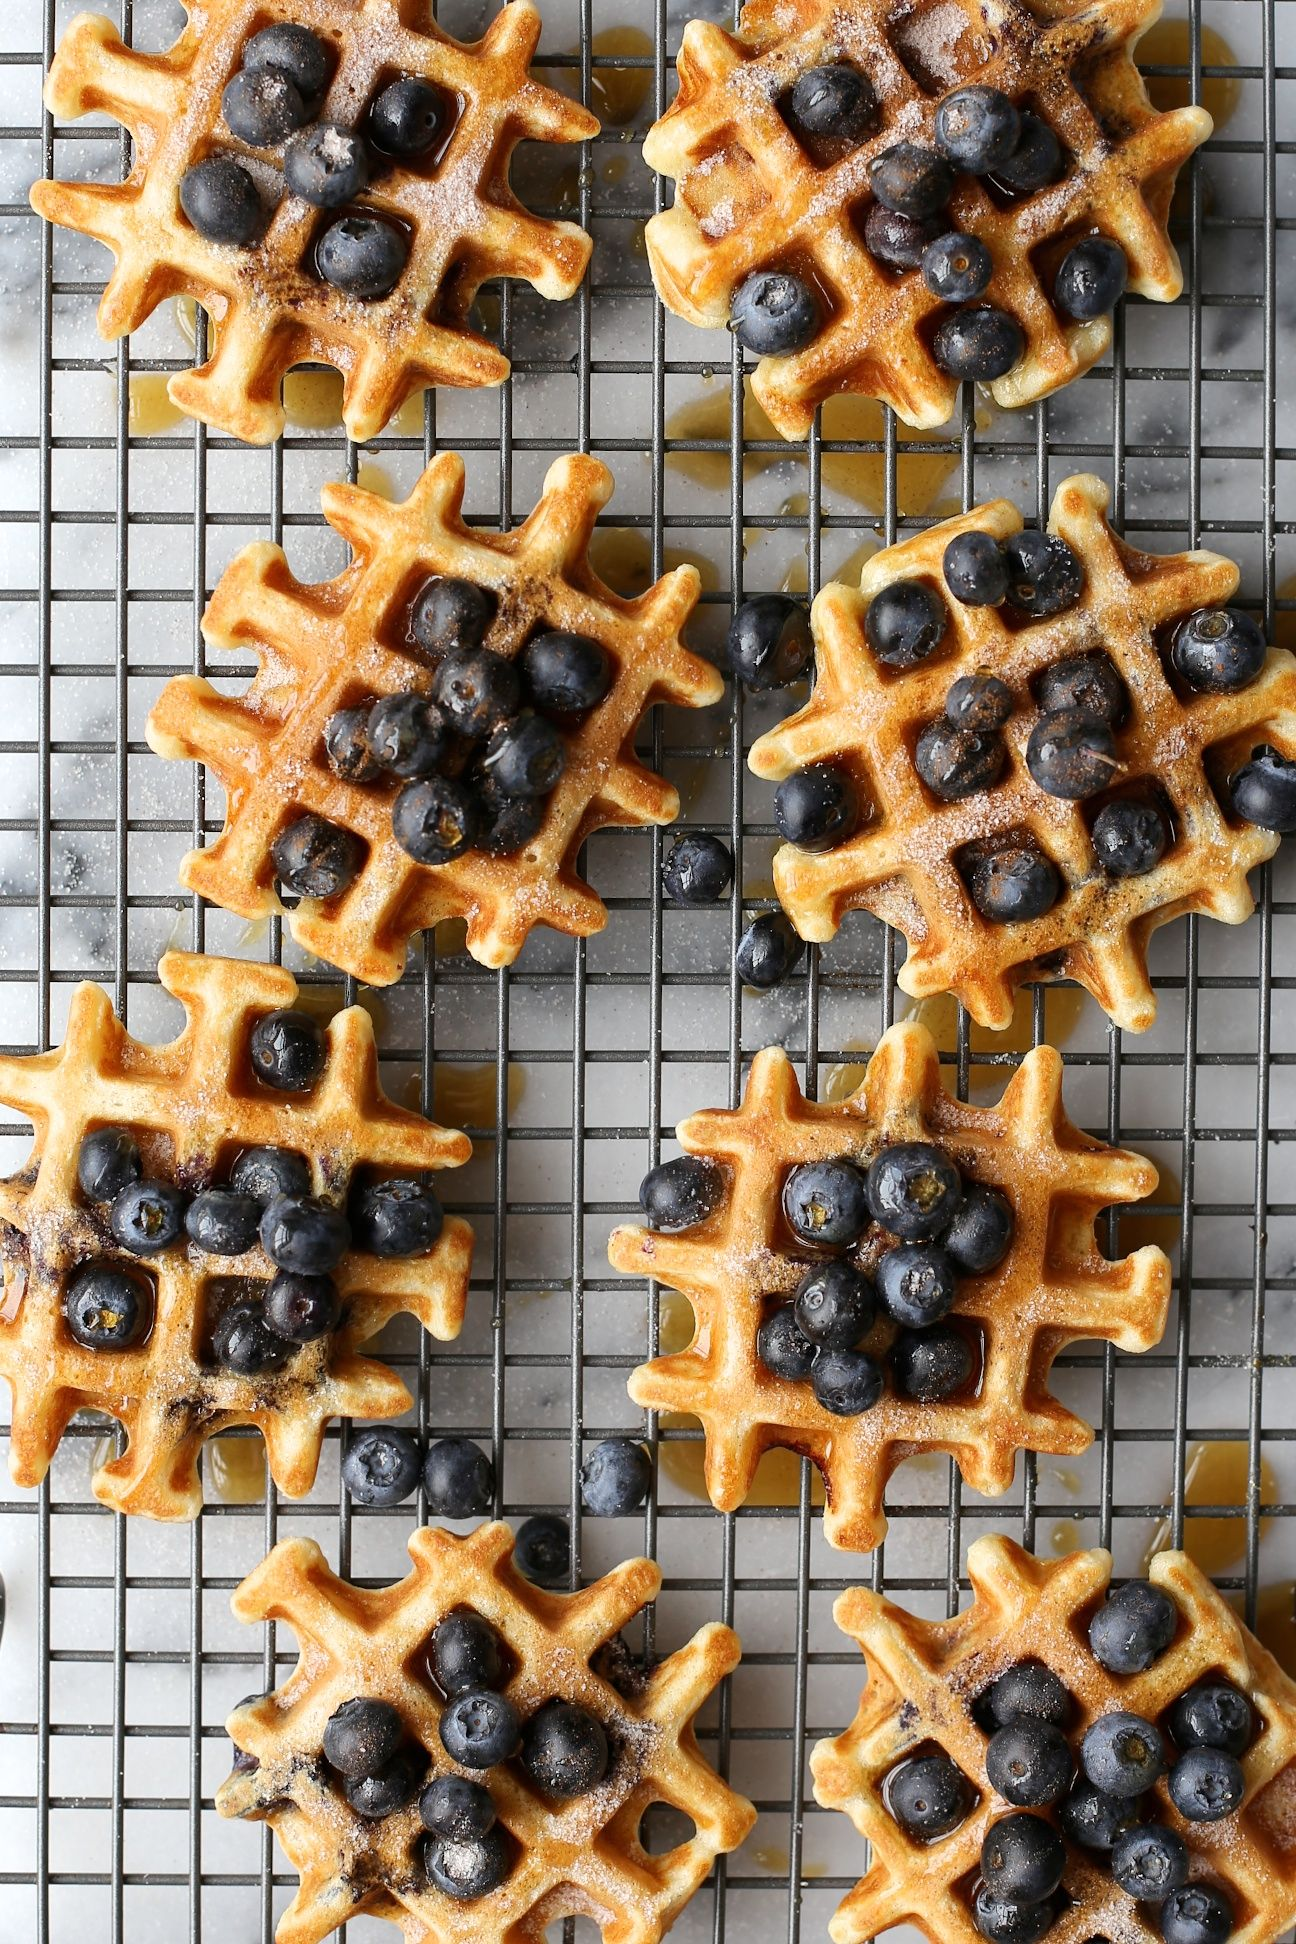 All The Blueberries Buttermilk Waffles Joy The Baker Recipe Buttermilk Waffles Breakfast Recipes Kids Food